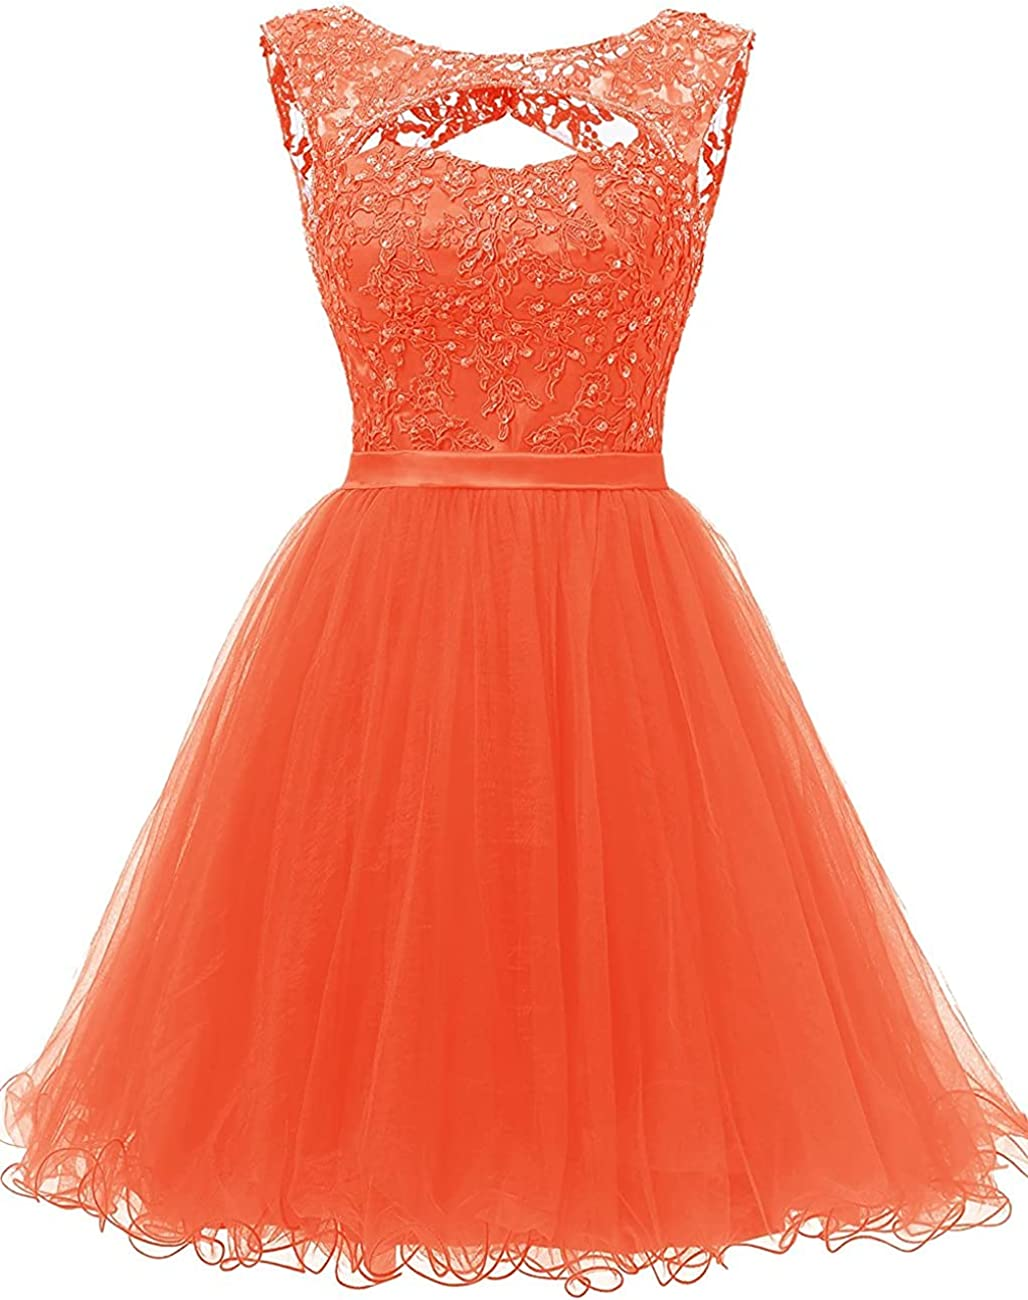 Homecoming Dress Tulle Short Prom Coc Lace Beaded NEW before selling ☆ Applique Max 89% OFF